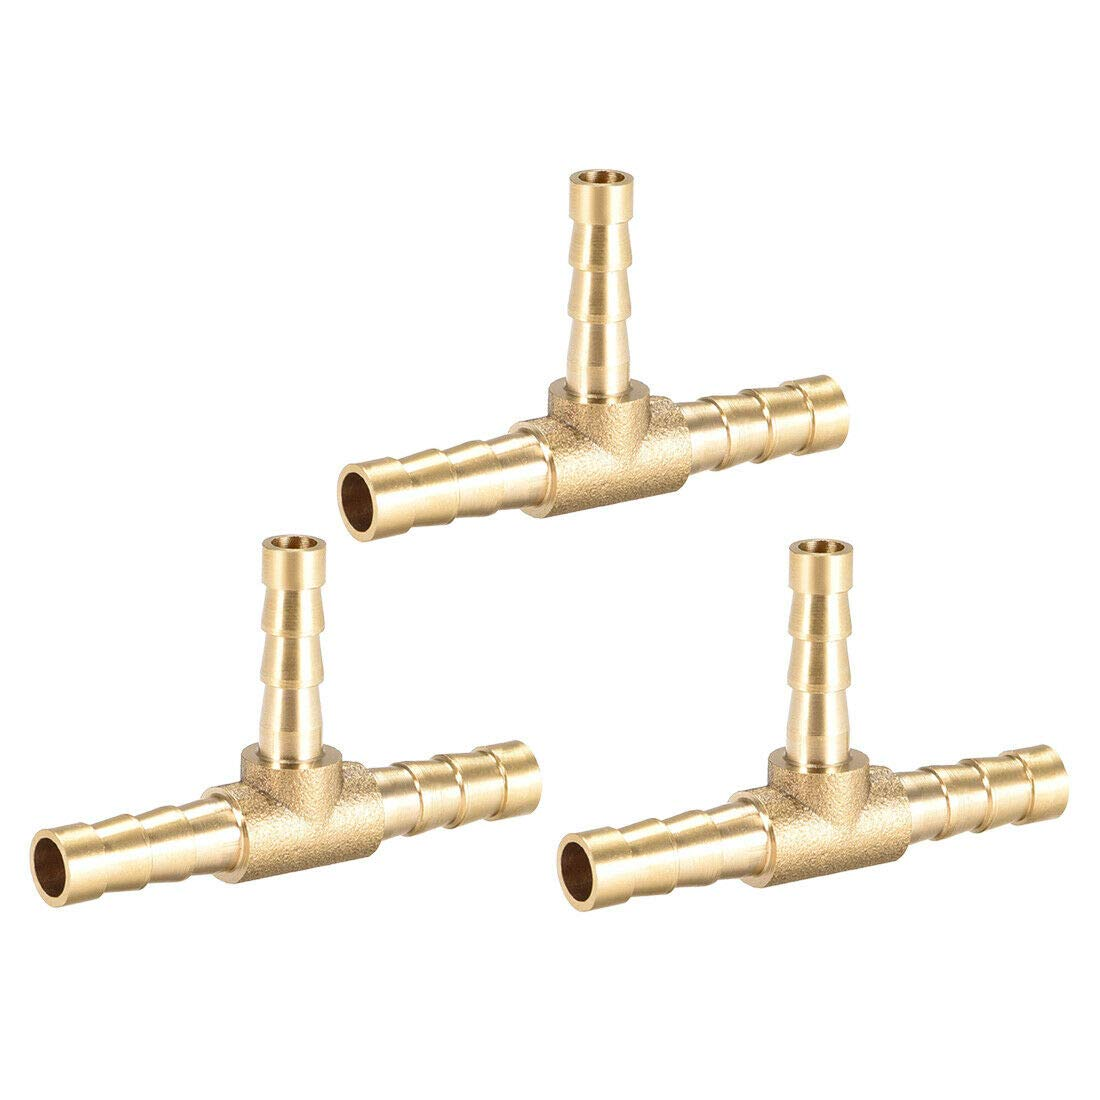 Pipe Fittings 6mm x 5mm x 6mm Brass Hose Reducer Barb Fitting Tee T-Shaped 3 Way Barbed 3pcs